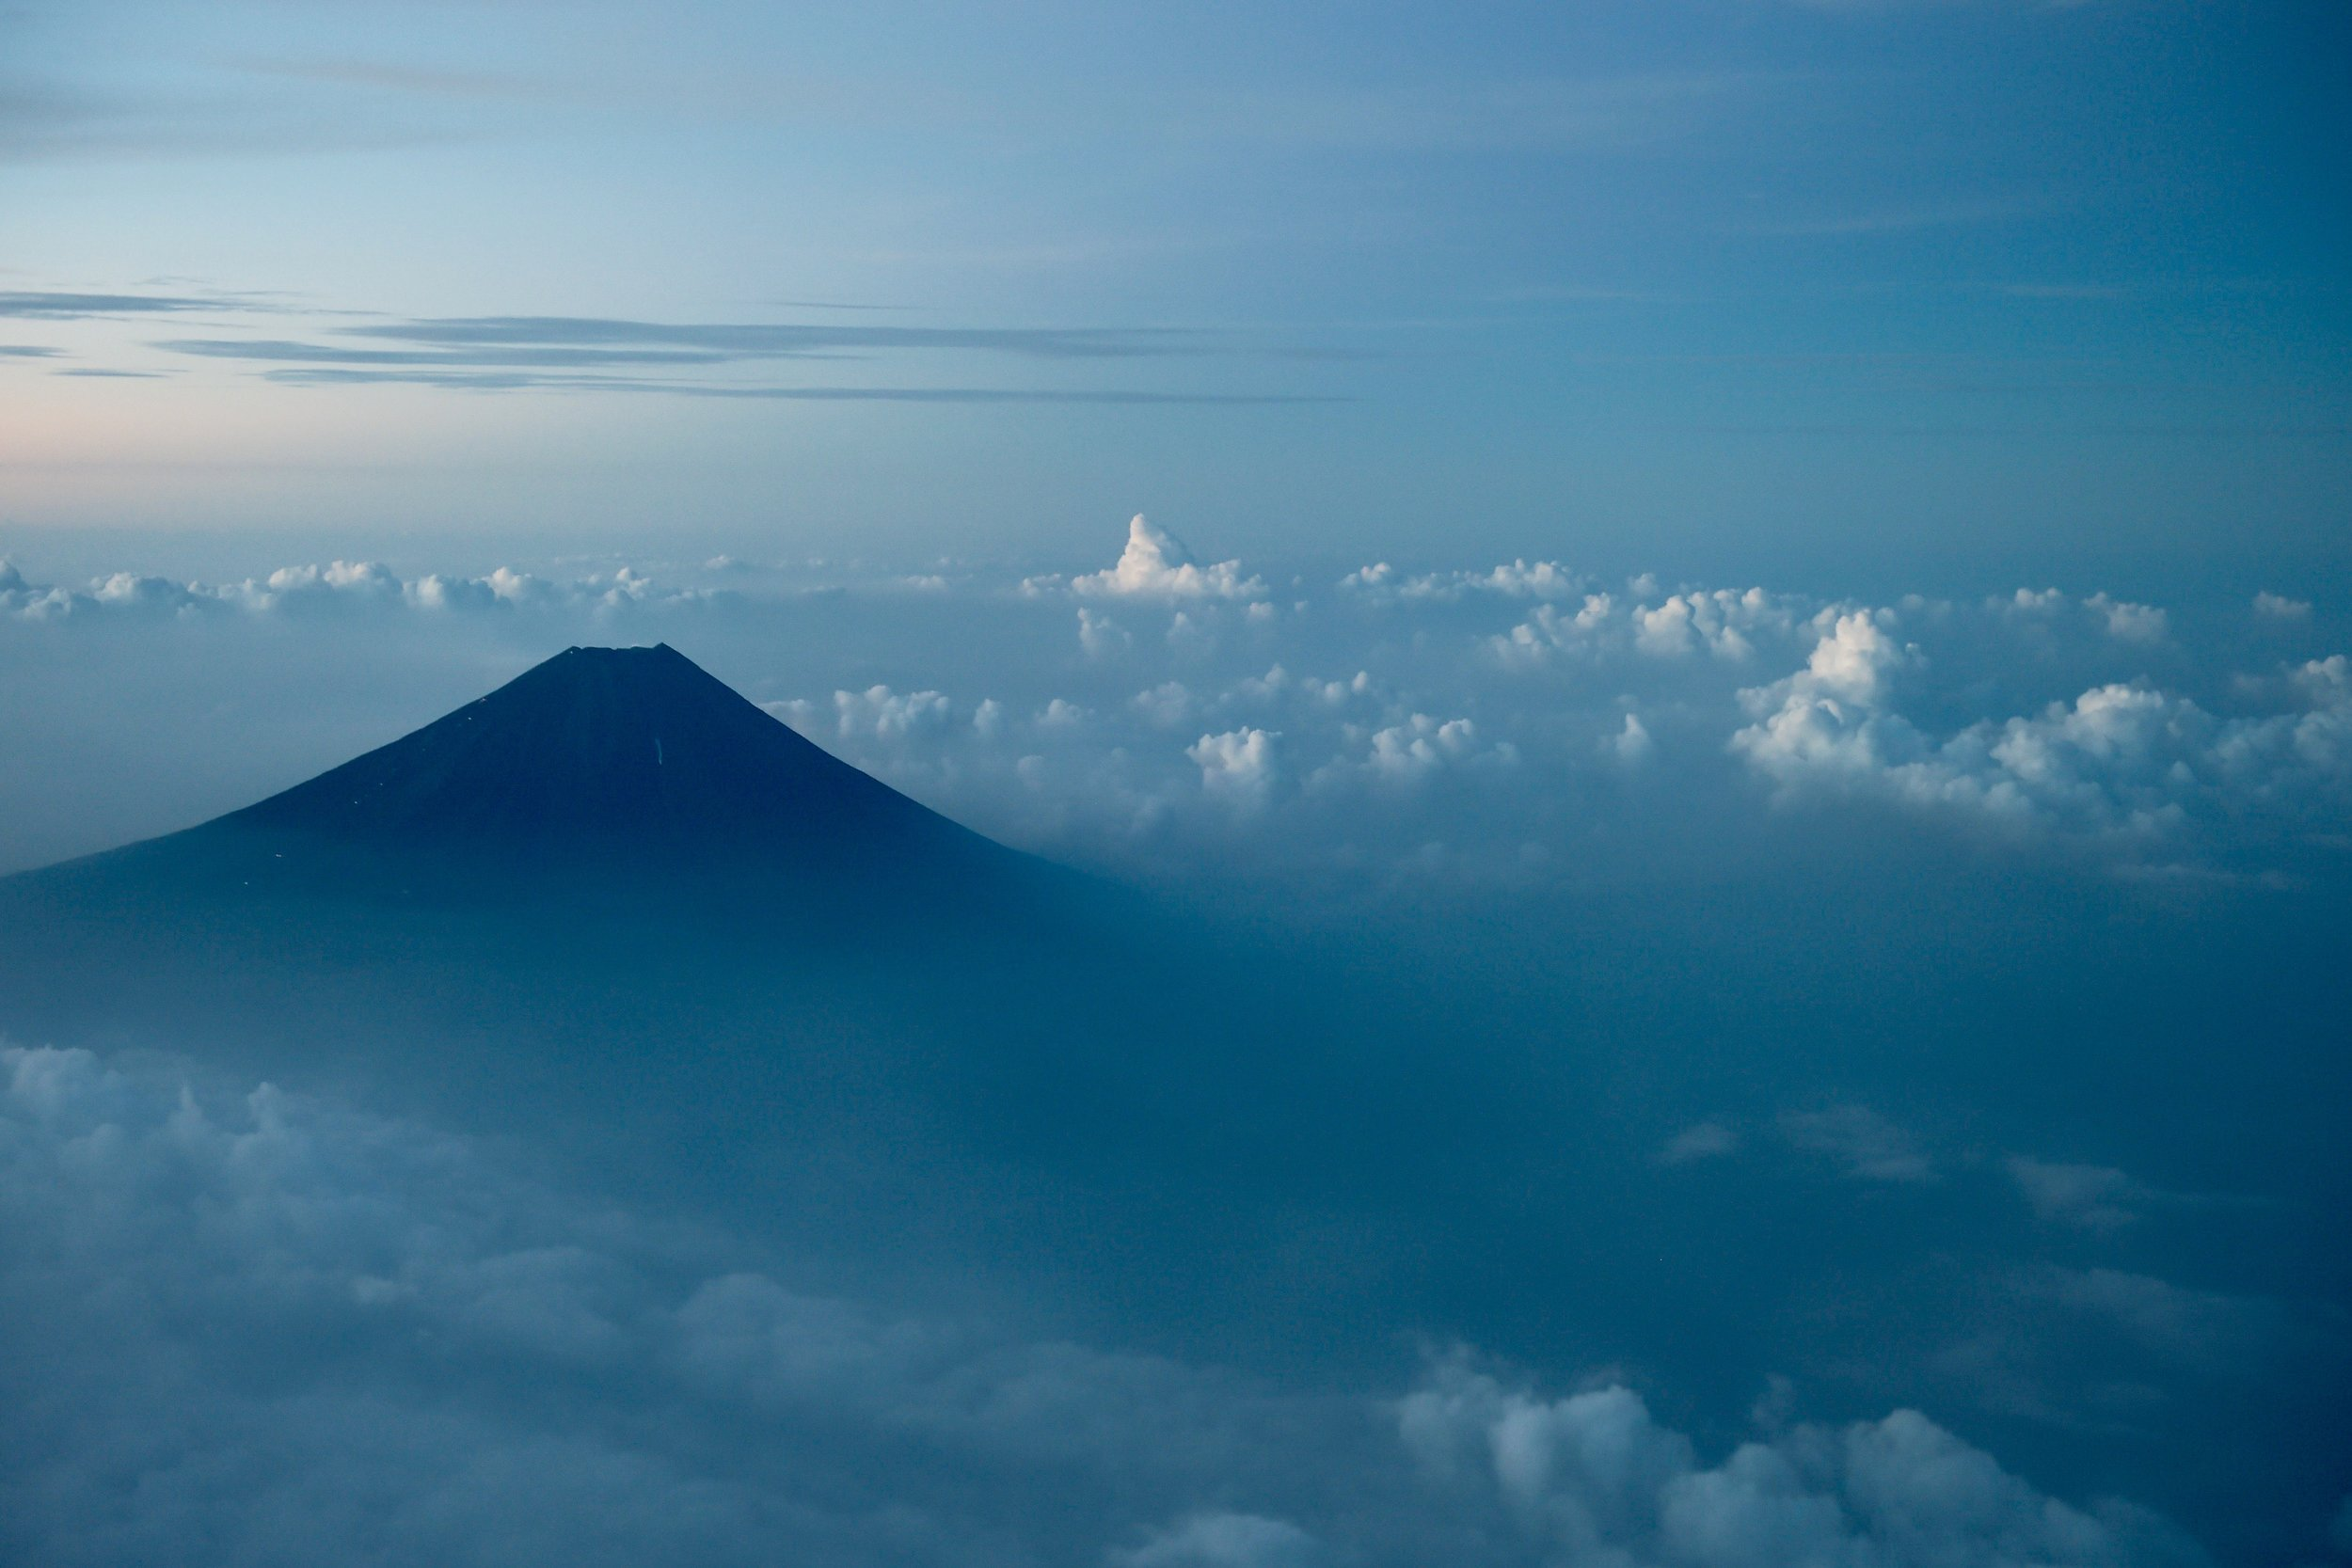 A sunrise view of Mt. Fuji during our arrival in Japan amid one of our 10 around-the-world trips.